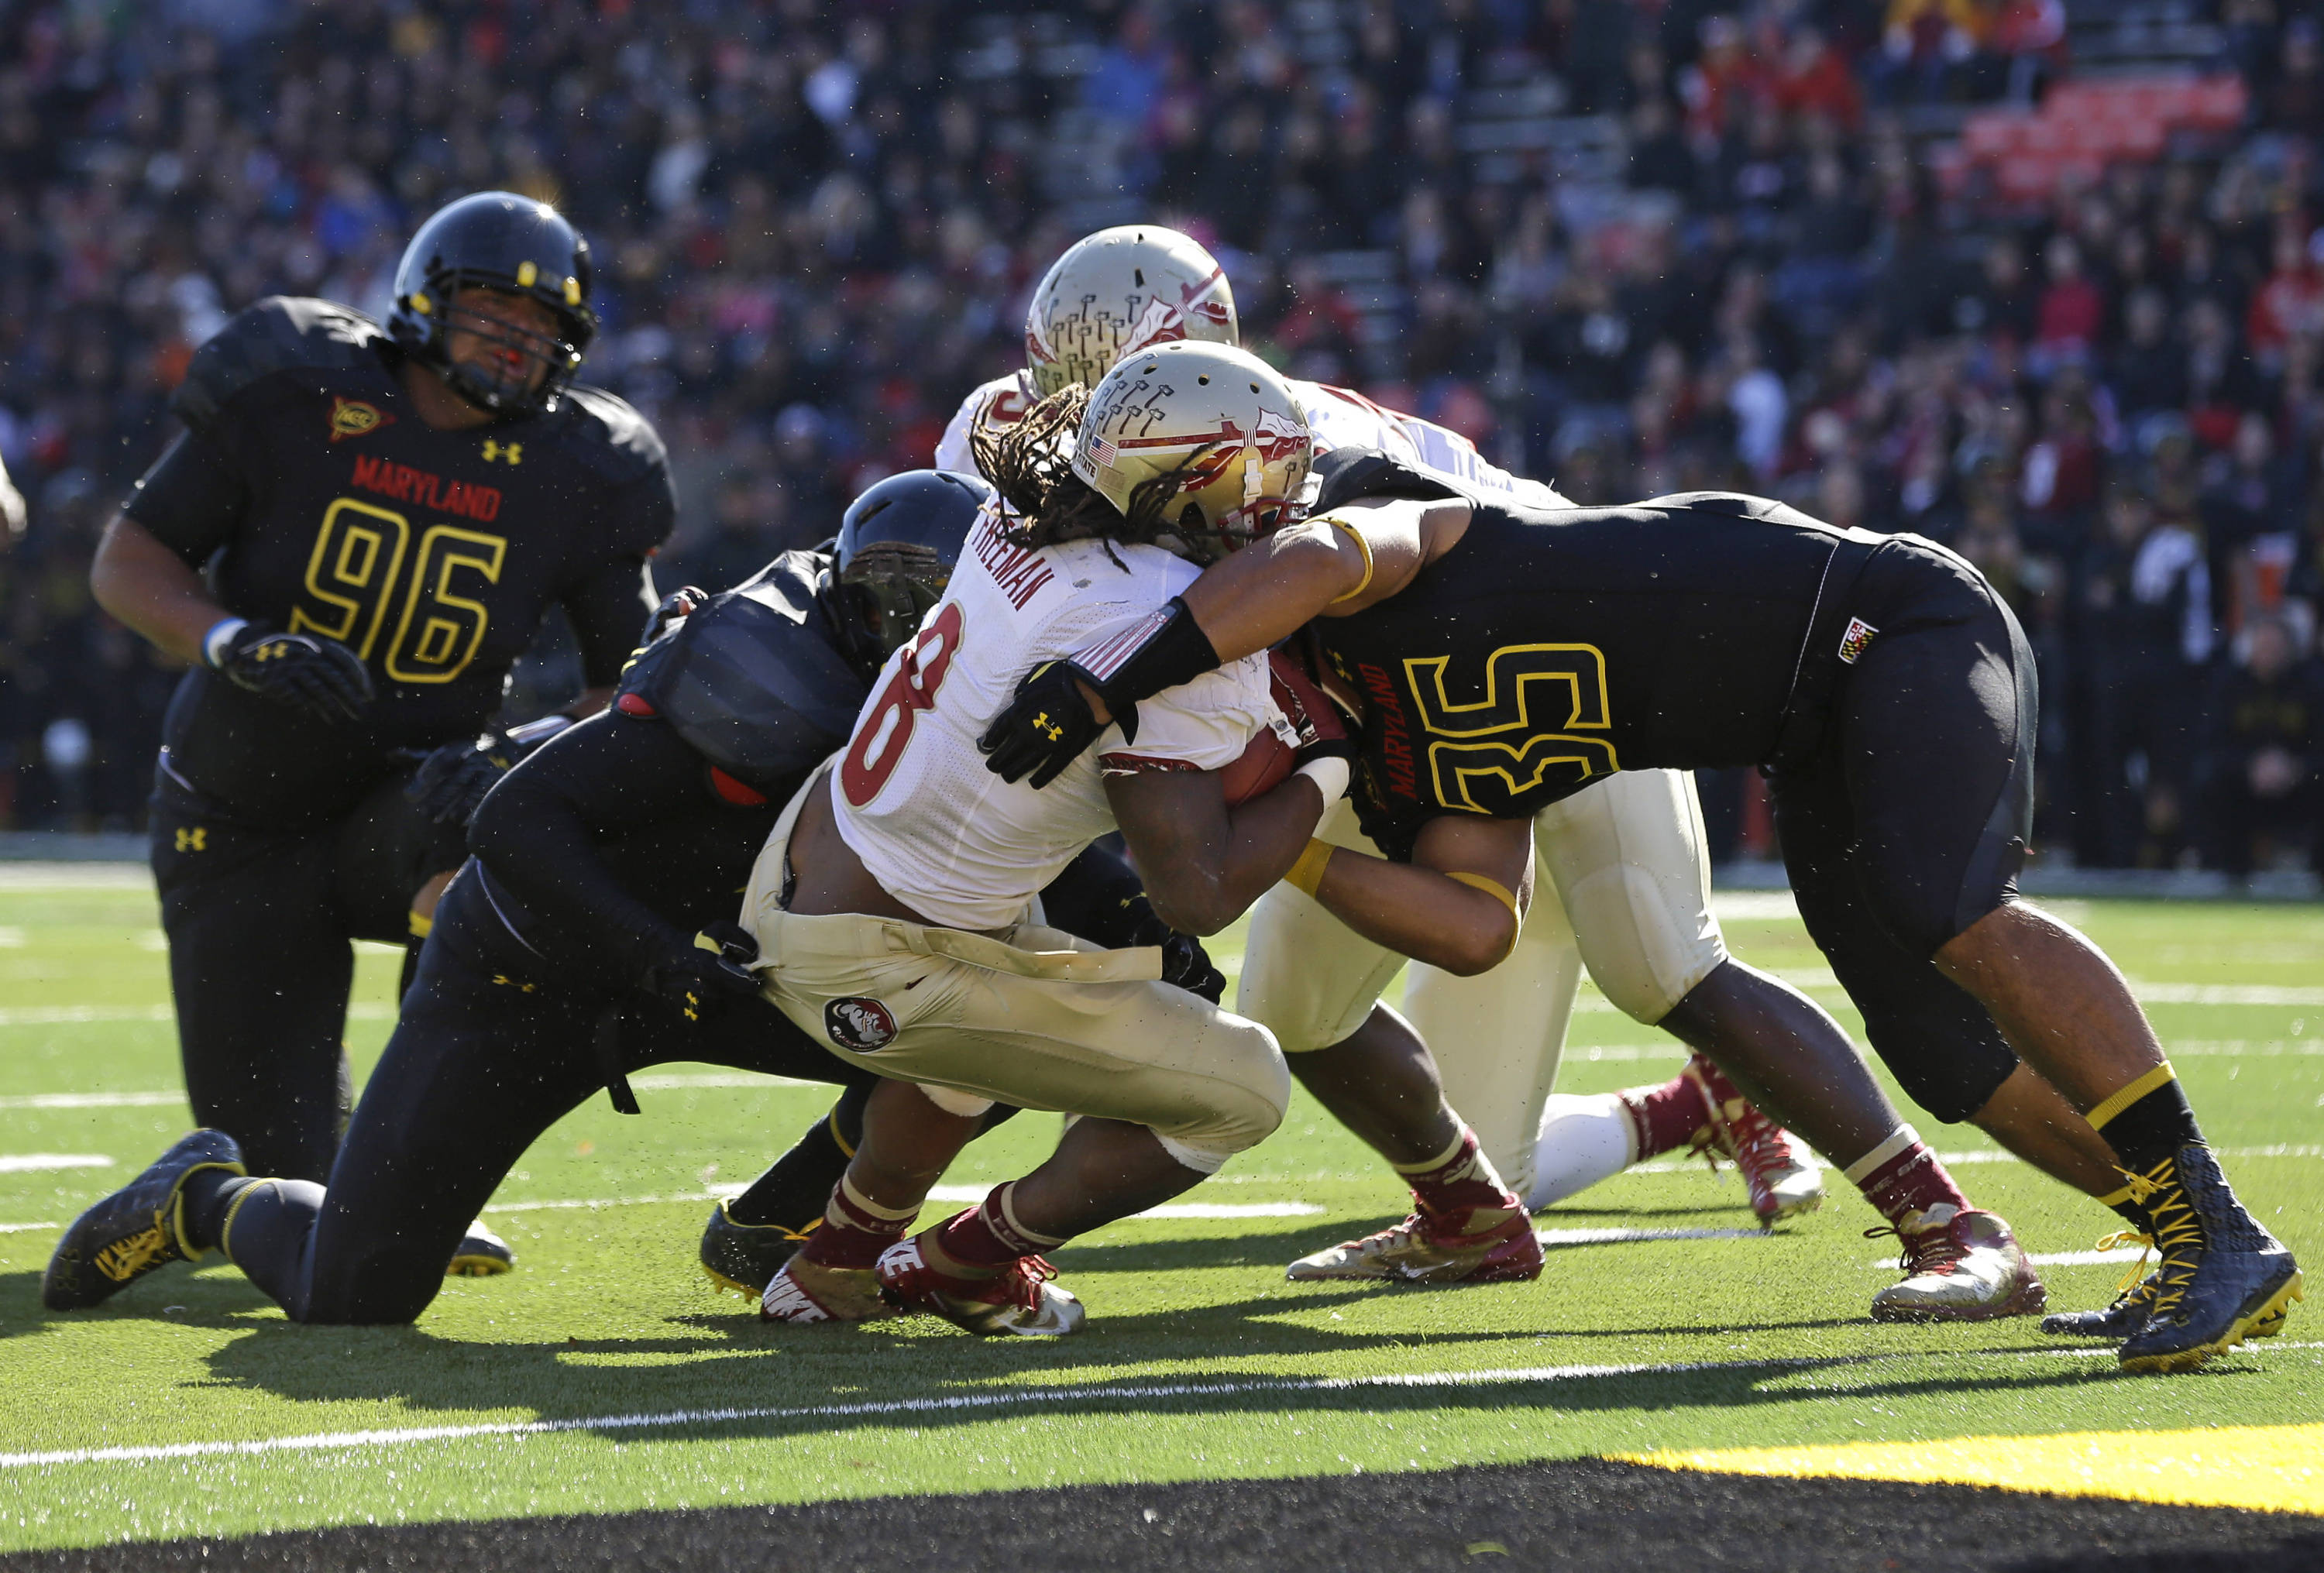 Running back Devonta Freeman, center, pushes into the end zone for a touchdown past Maryland linebacker Alex Twine (35) in the first half of an NCAA college football game in College Park, Md., Saturday, Nov. 17, 2012. (AP Photo/Patrick Semansky)